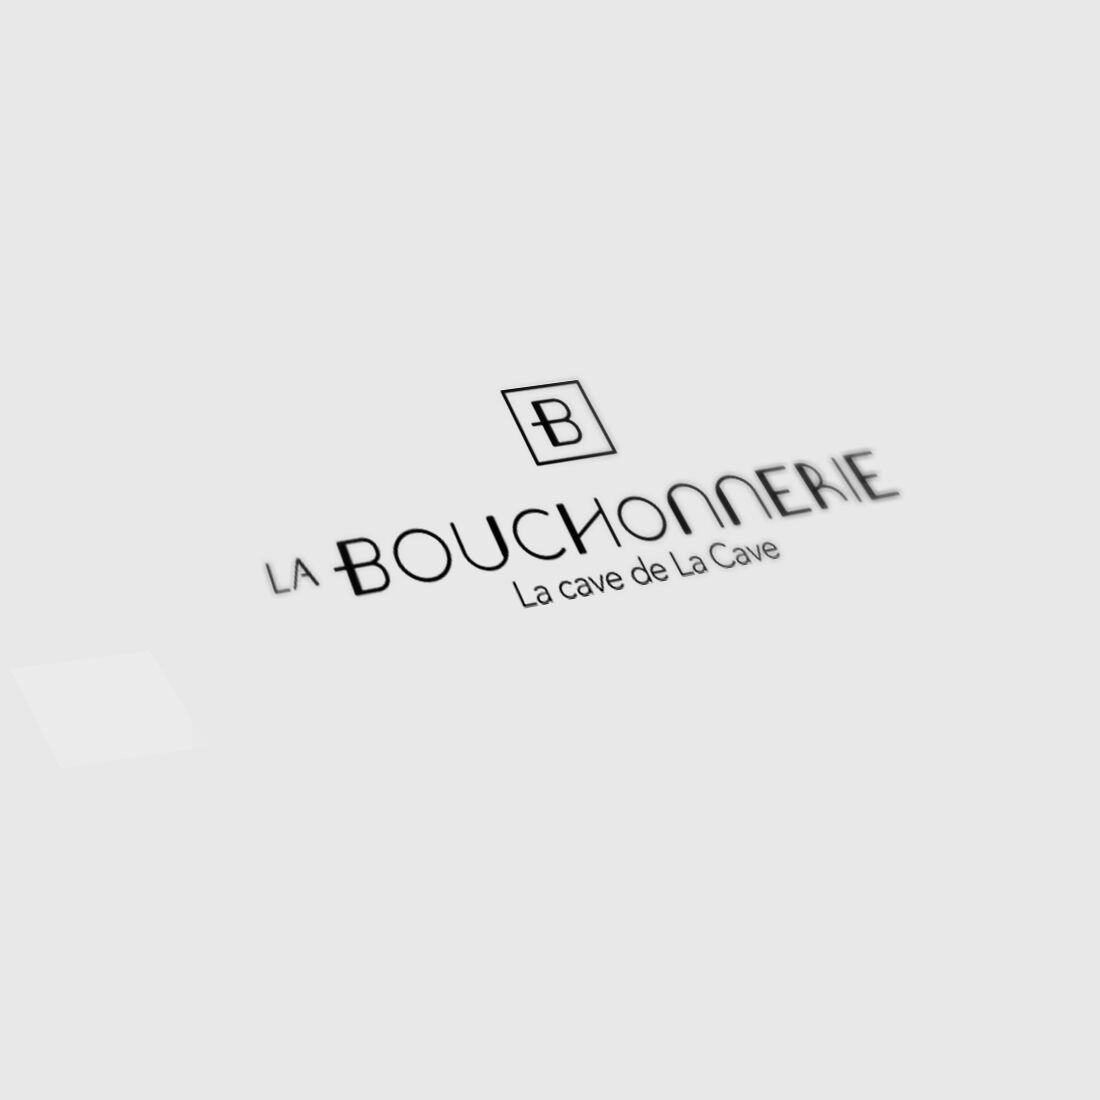 creation-site-web-annecy-bouchonnerie